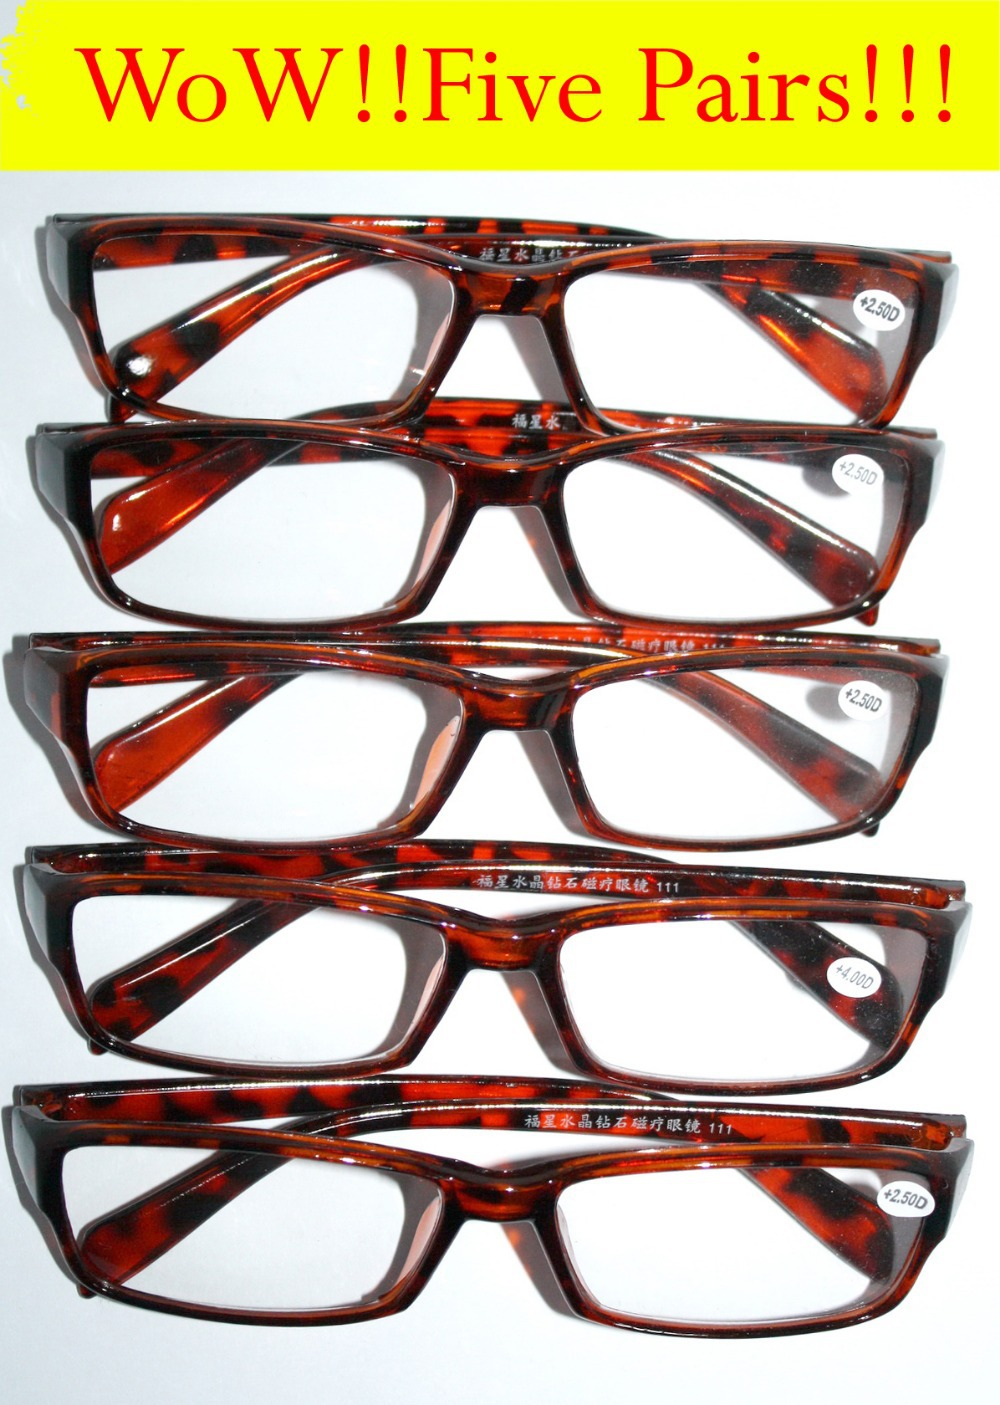 c95fd9bb1ca7  FIVE PAIRS (mix strength ok) WHOLESALE  RECTANGULAR classic JOBLOT  discount reading glasses +1 +1.5 +2 +2.5 +3 +3.5 +4 033